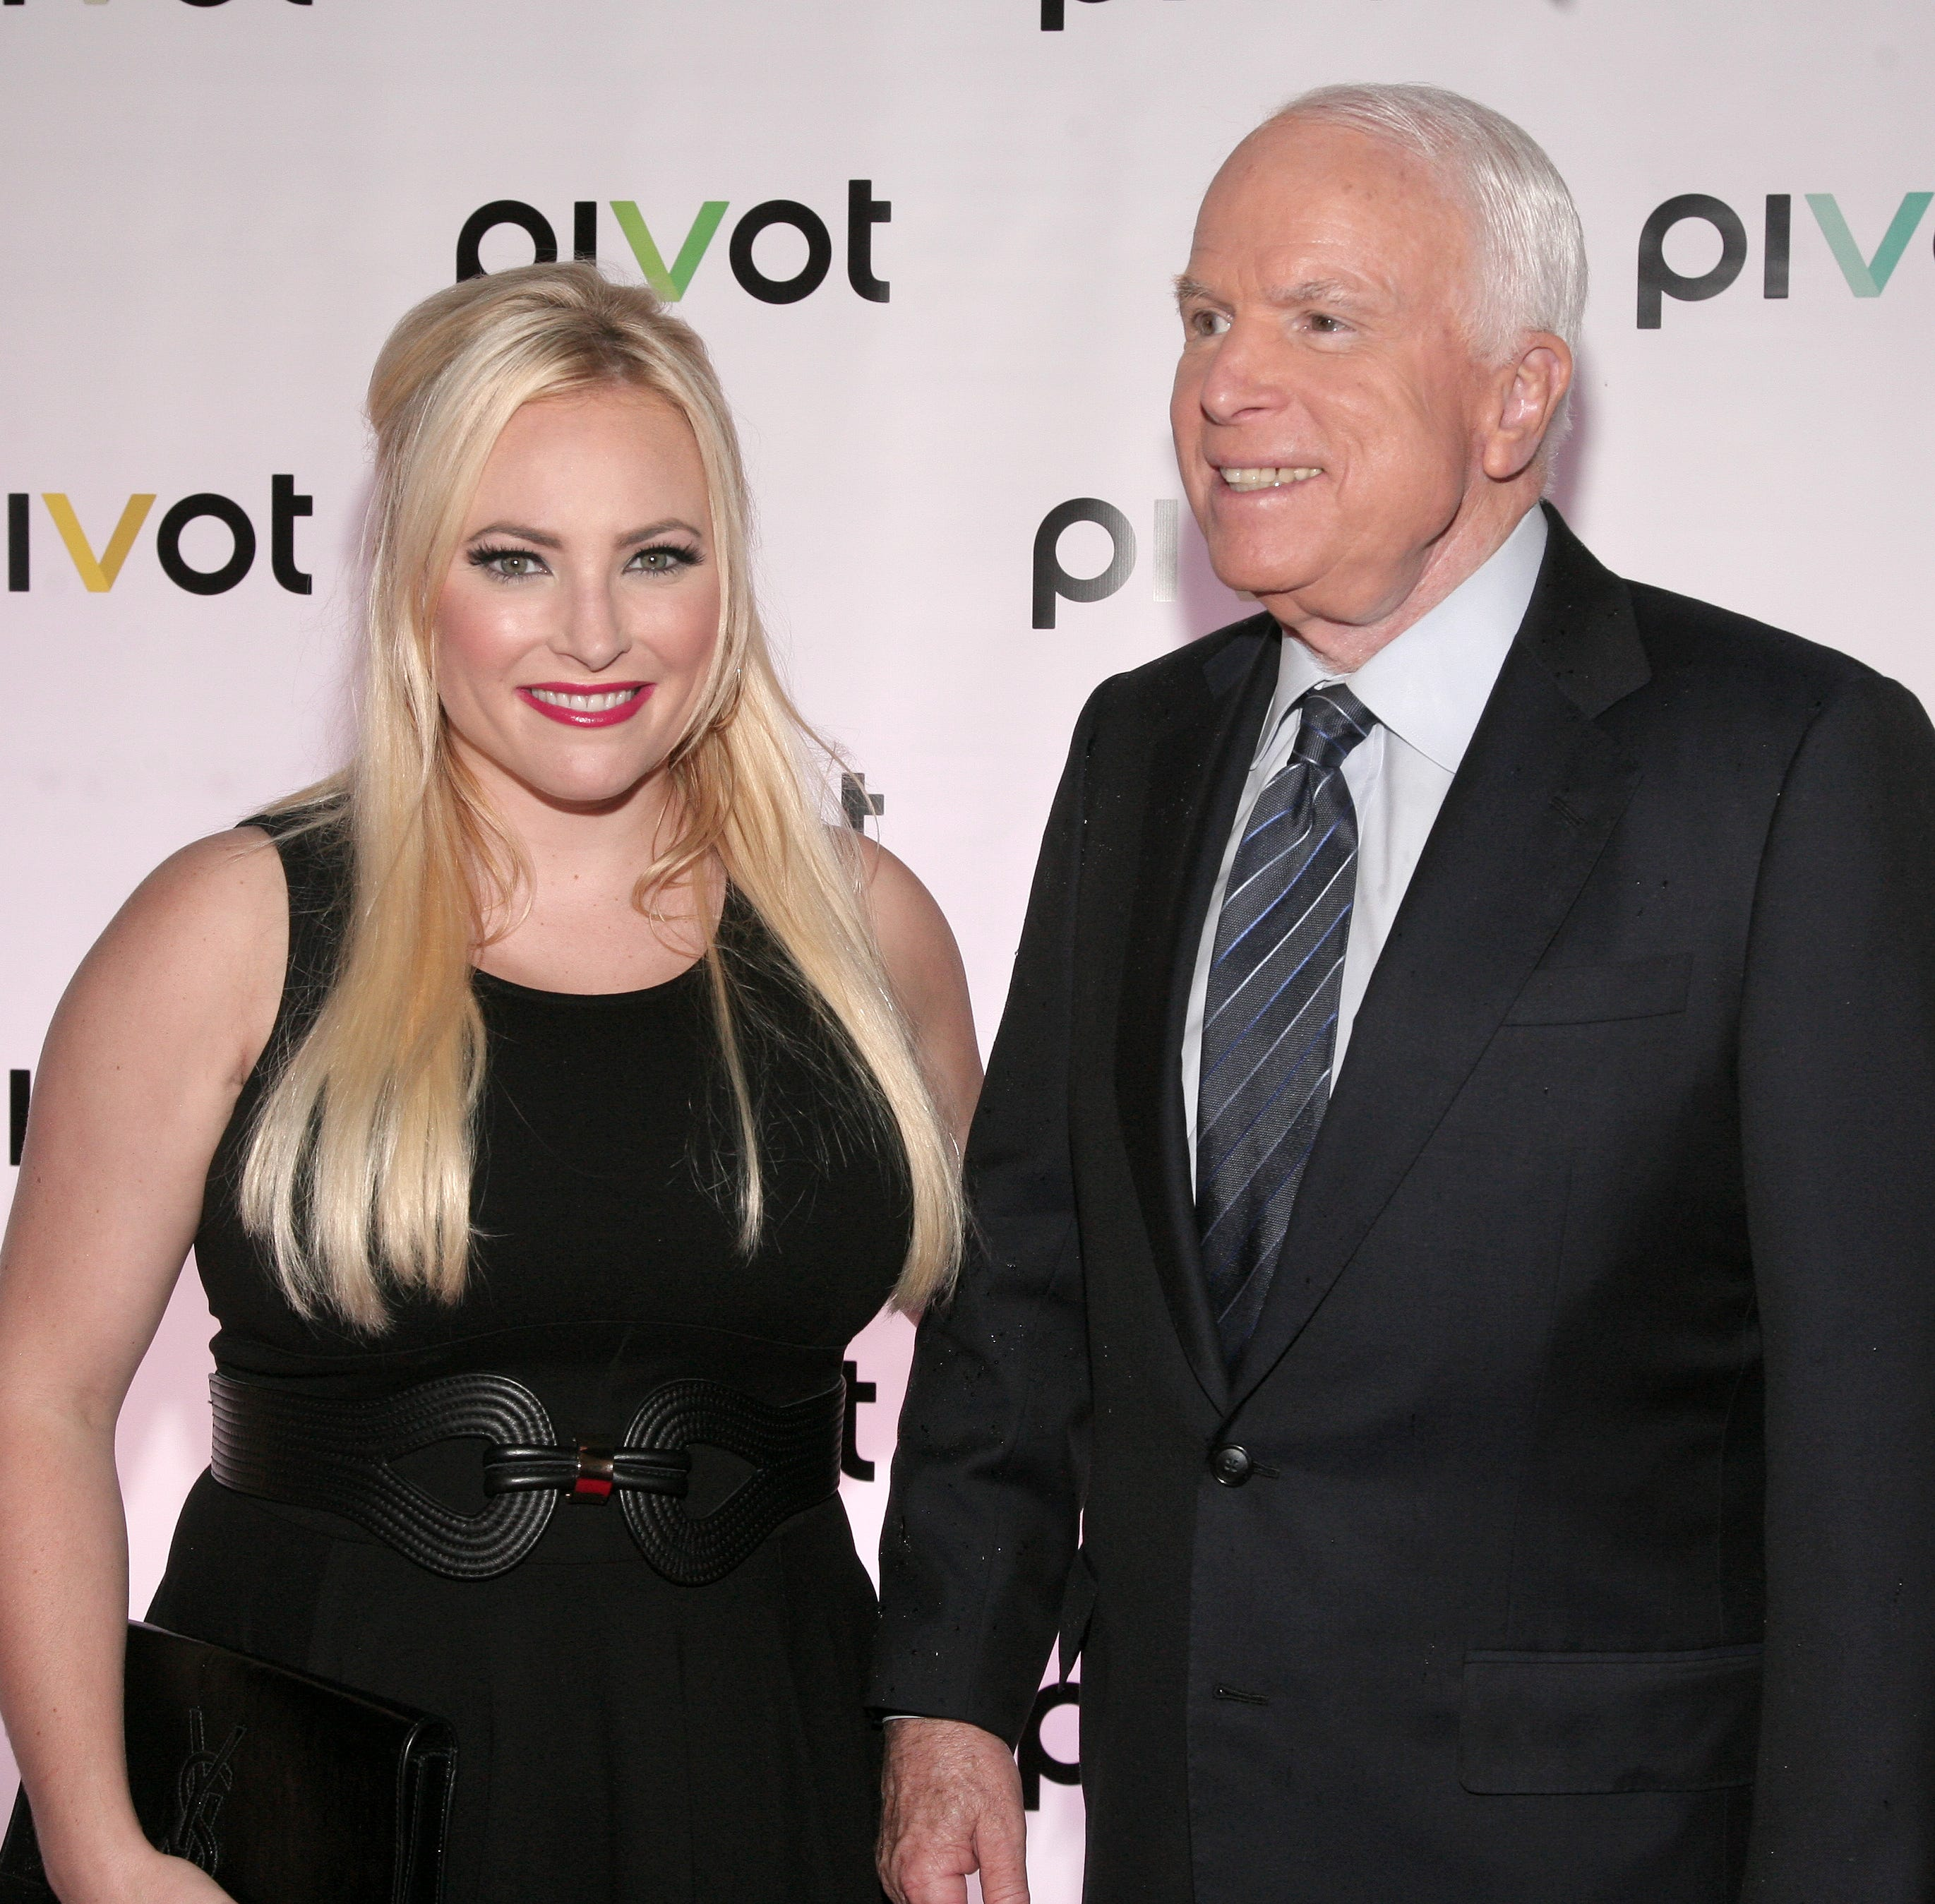 Meghan McCain doesn't deserve the attention or the ridicule she receives